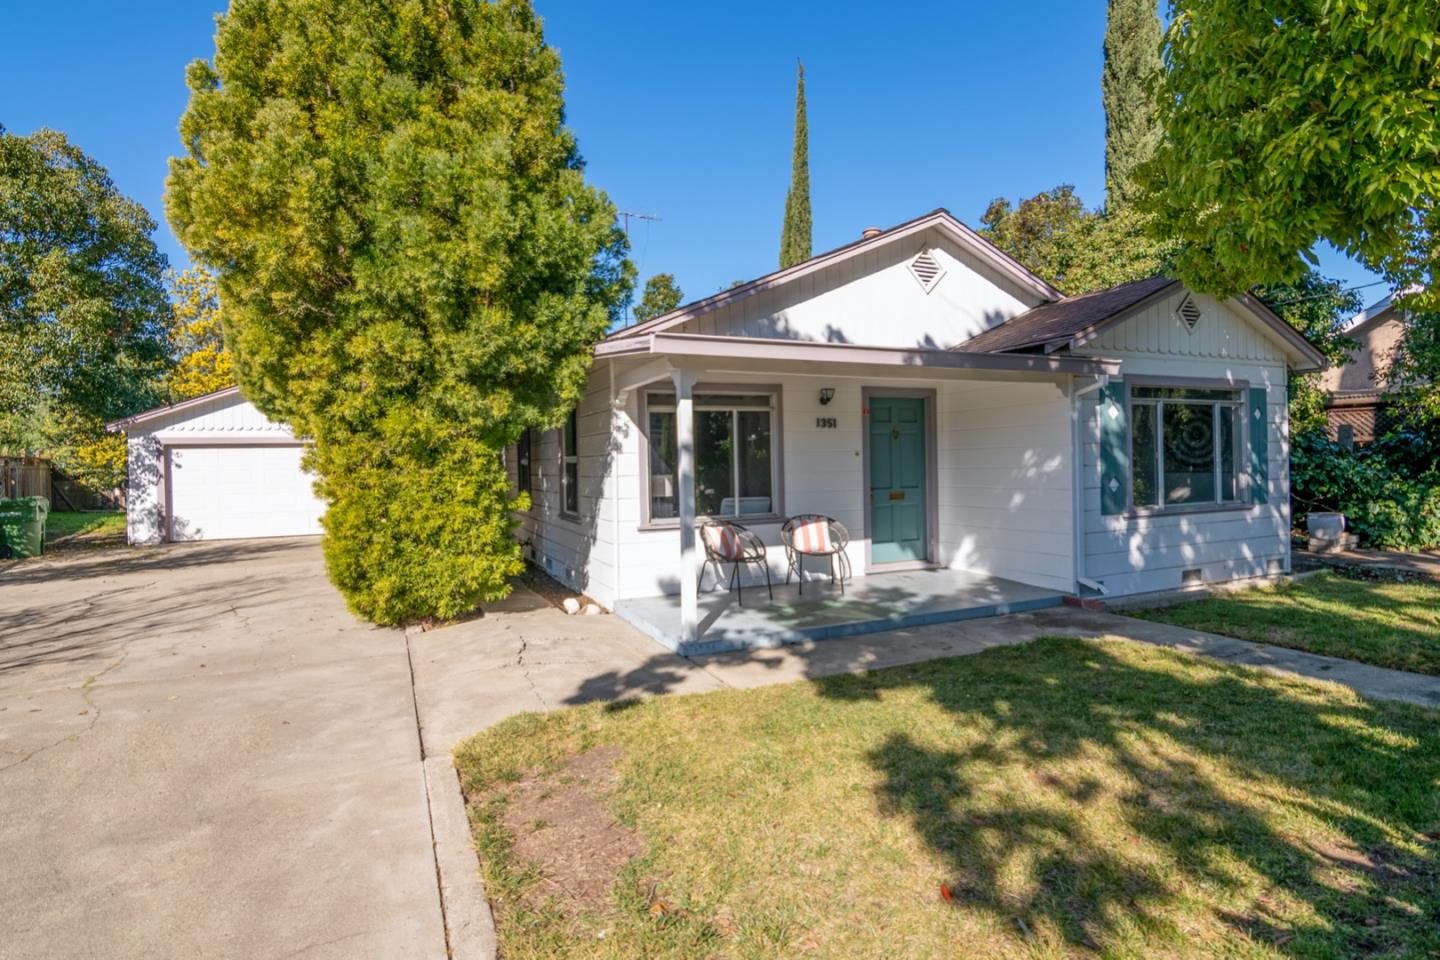 1351 PEGGY AVE, CAMPBELL, CA 95008